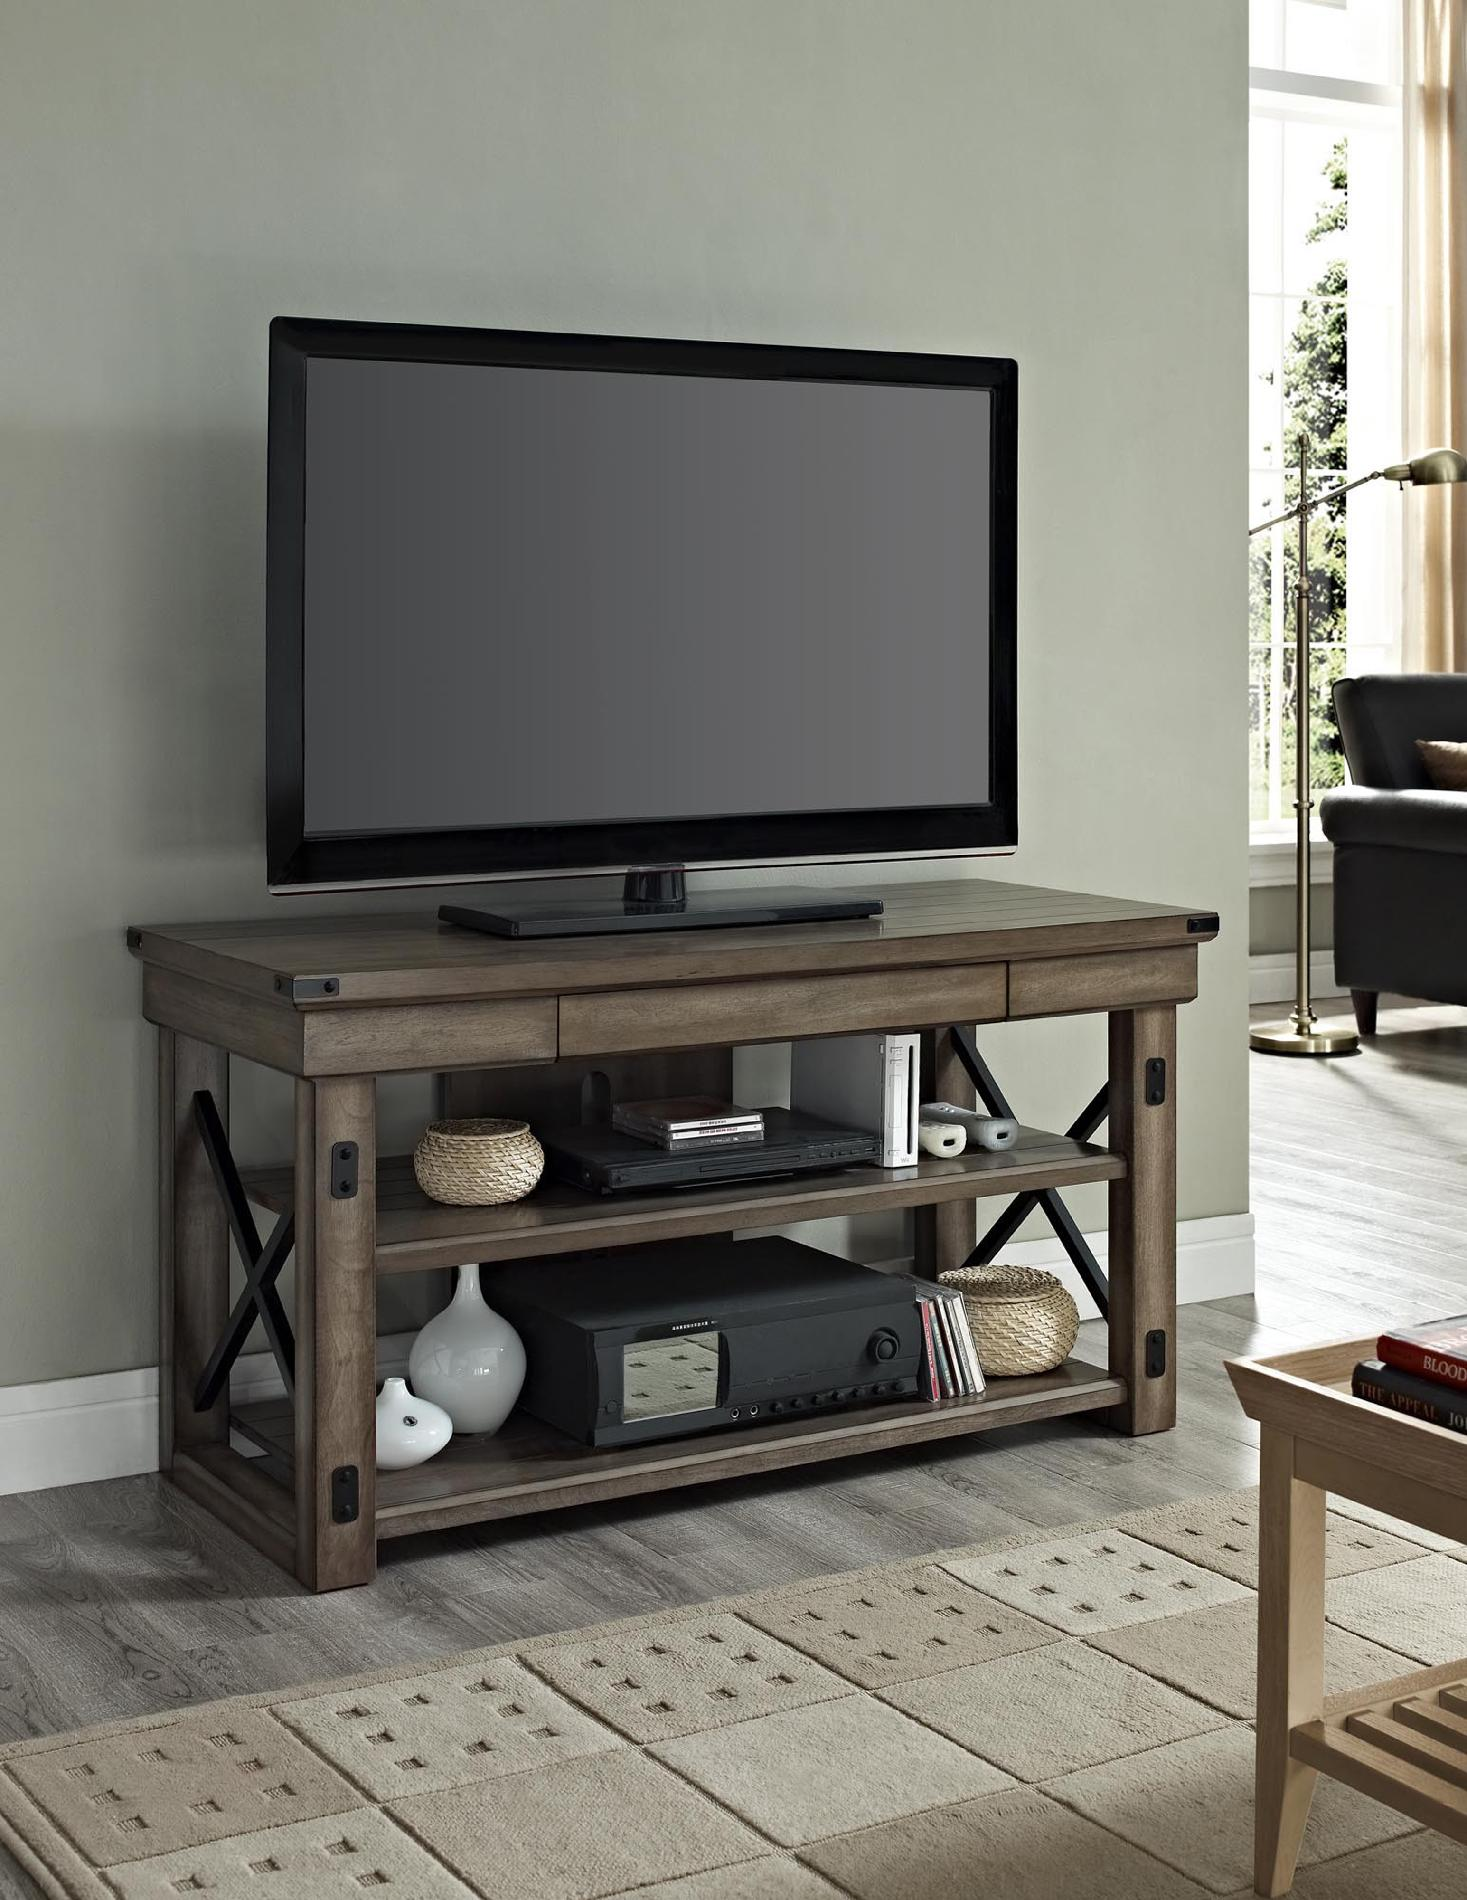 Dorel Home Furnishings Wildwood Rustic Gray TV Console